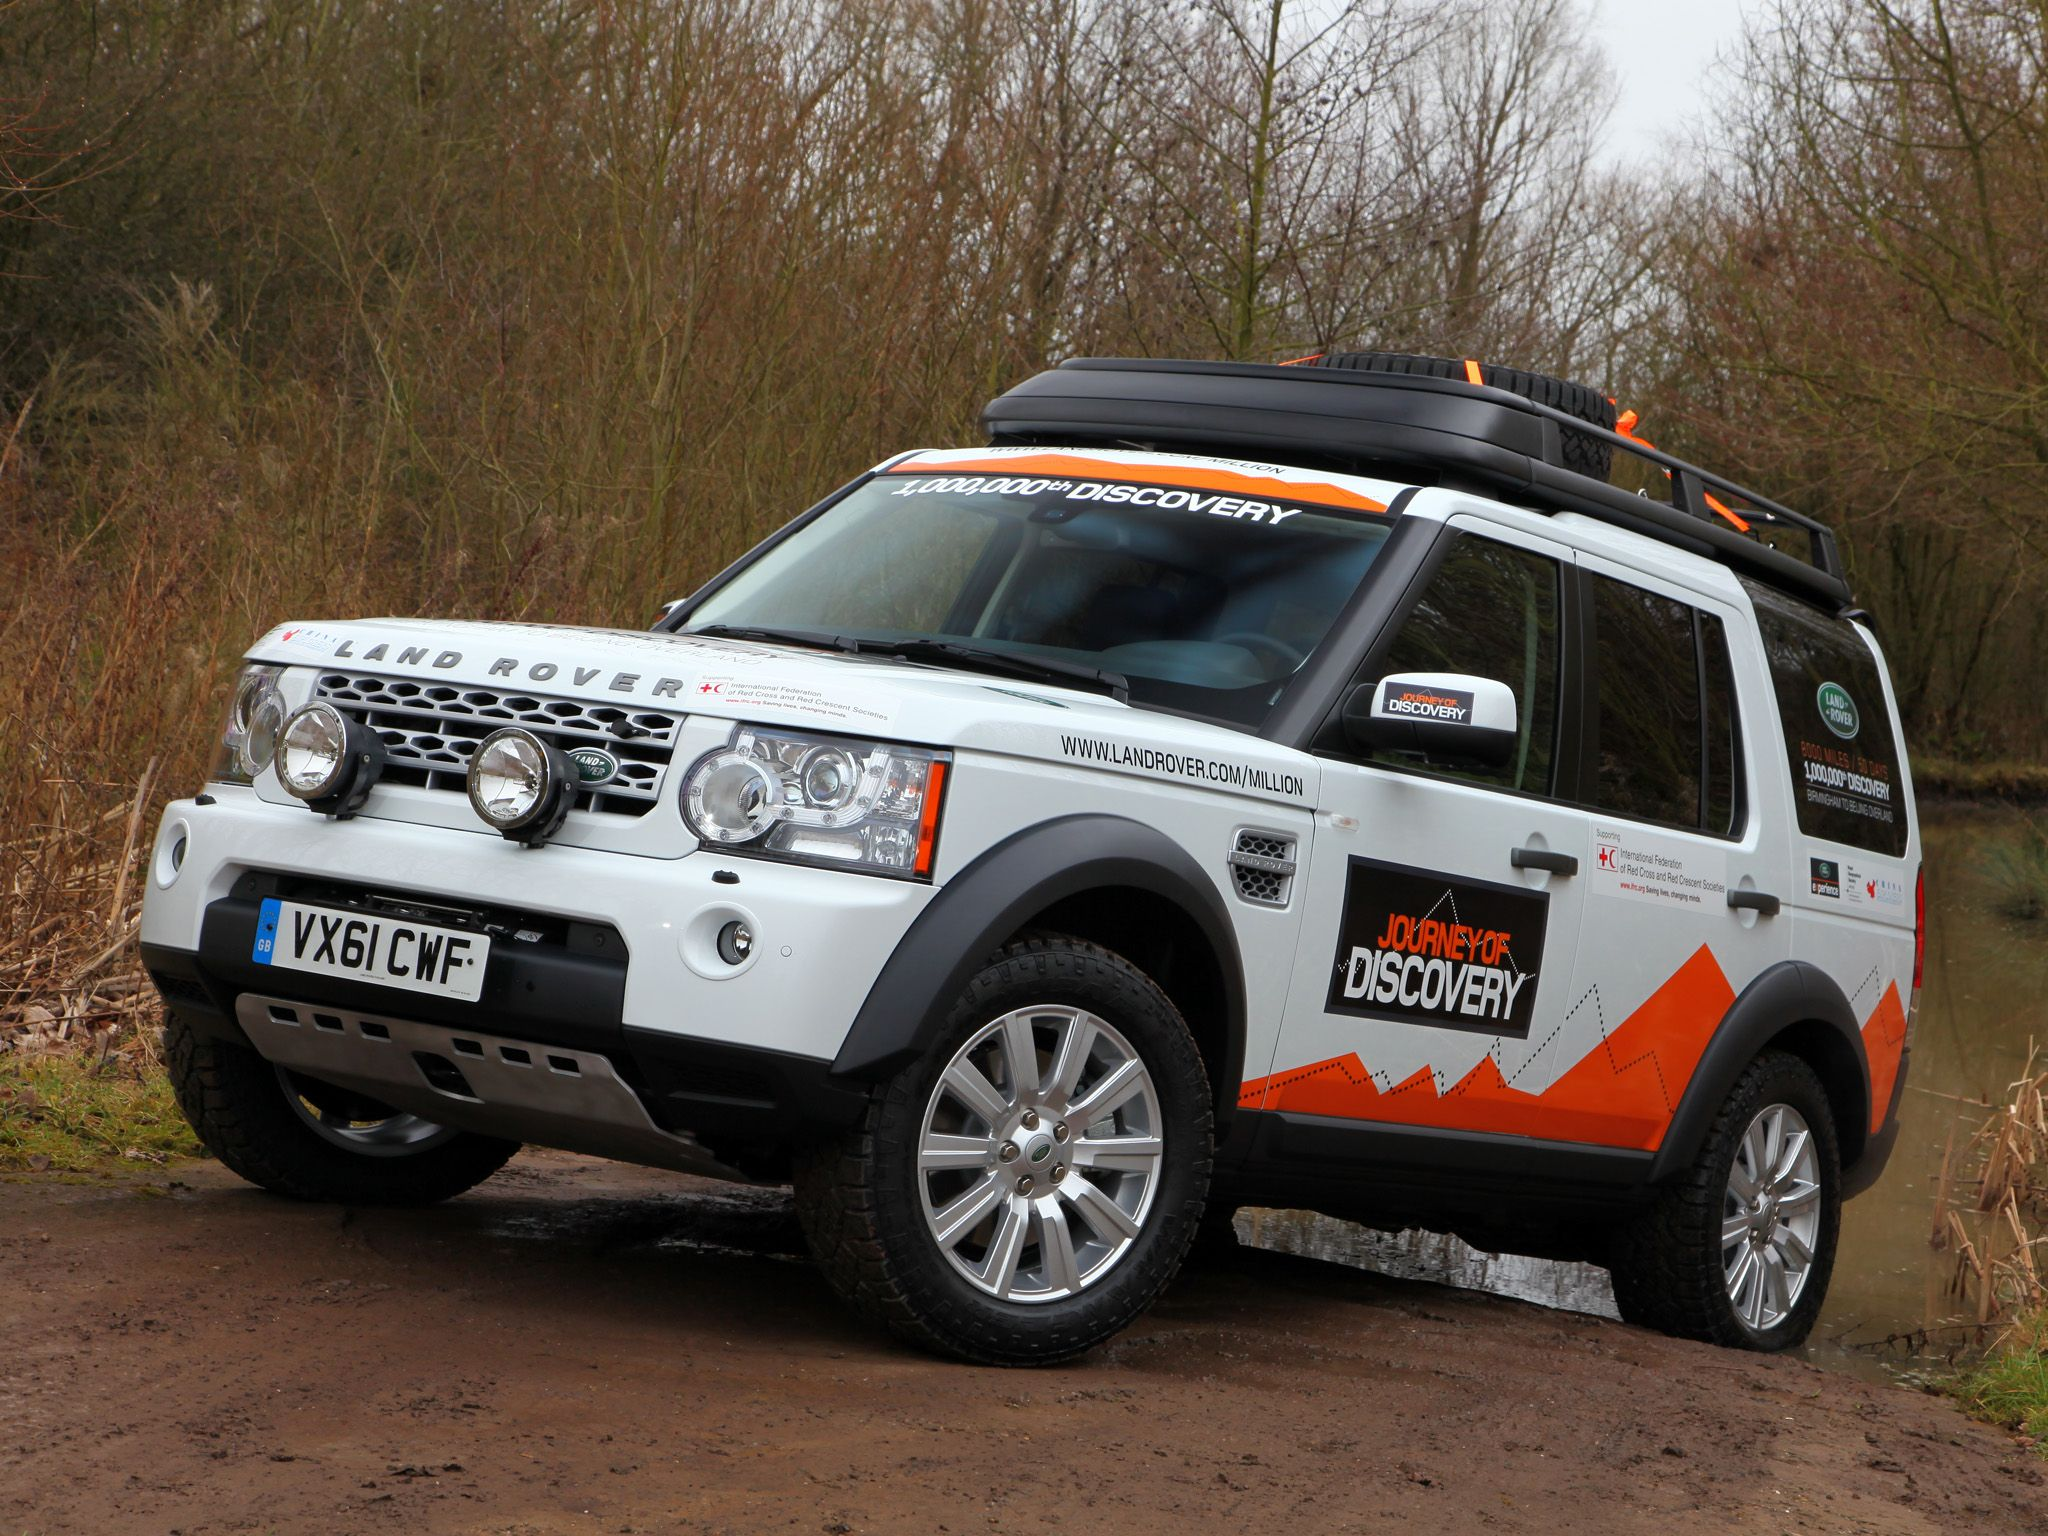 landrover rear off heavy duty parts itm spare rover road discovery land wheel carrier